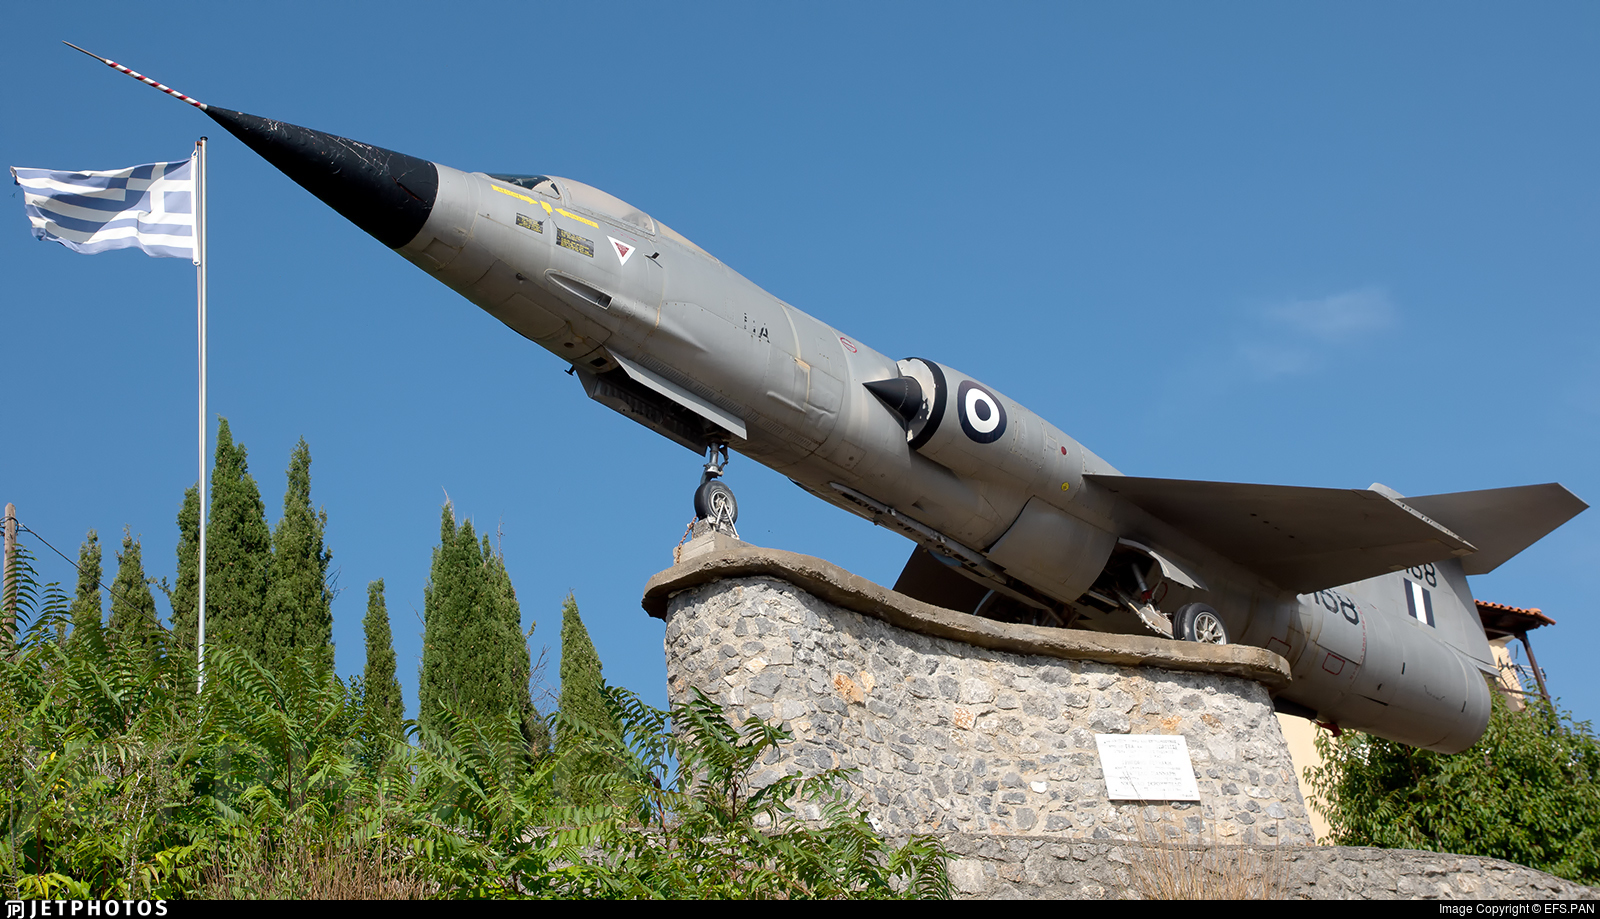 7168 - Lockheed F-104G Starfighter - Greece - Air Force